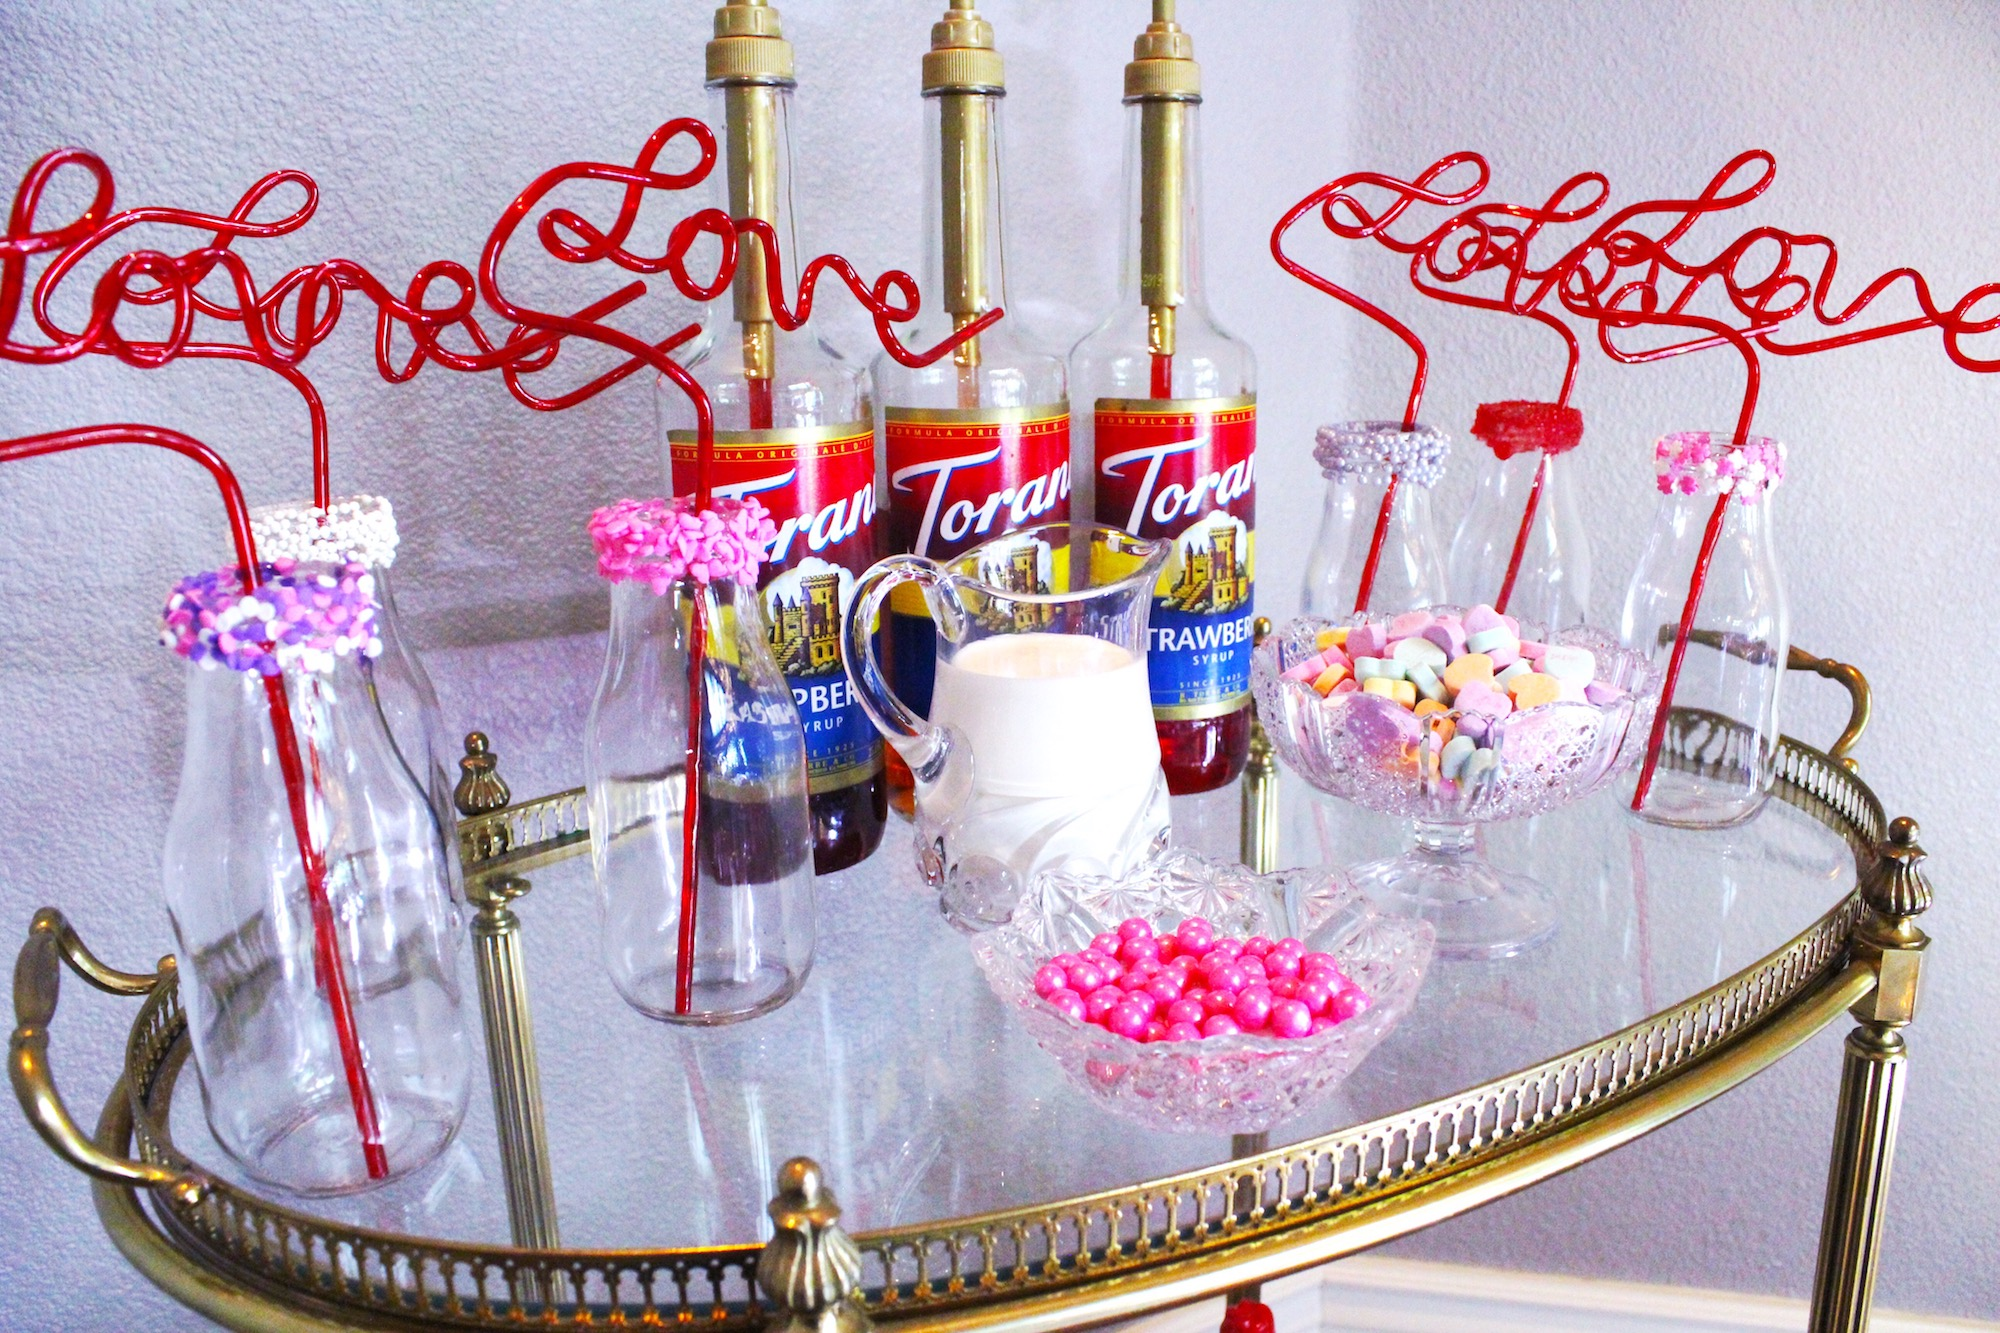 Italian Soda Valentine's Day Bar Cart_Design Organize Party.JPG